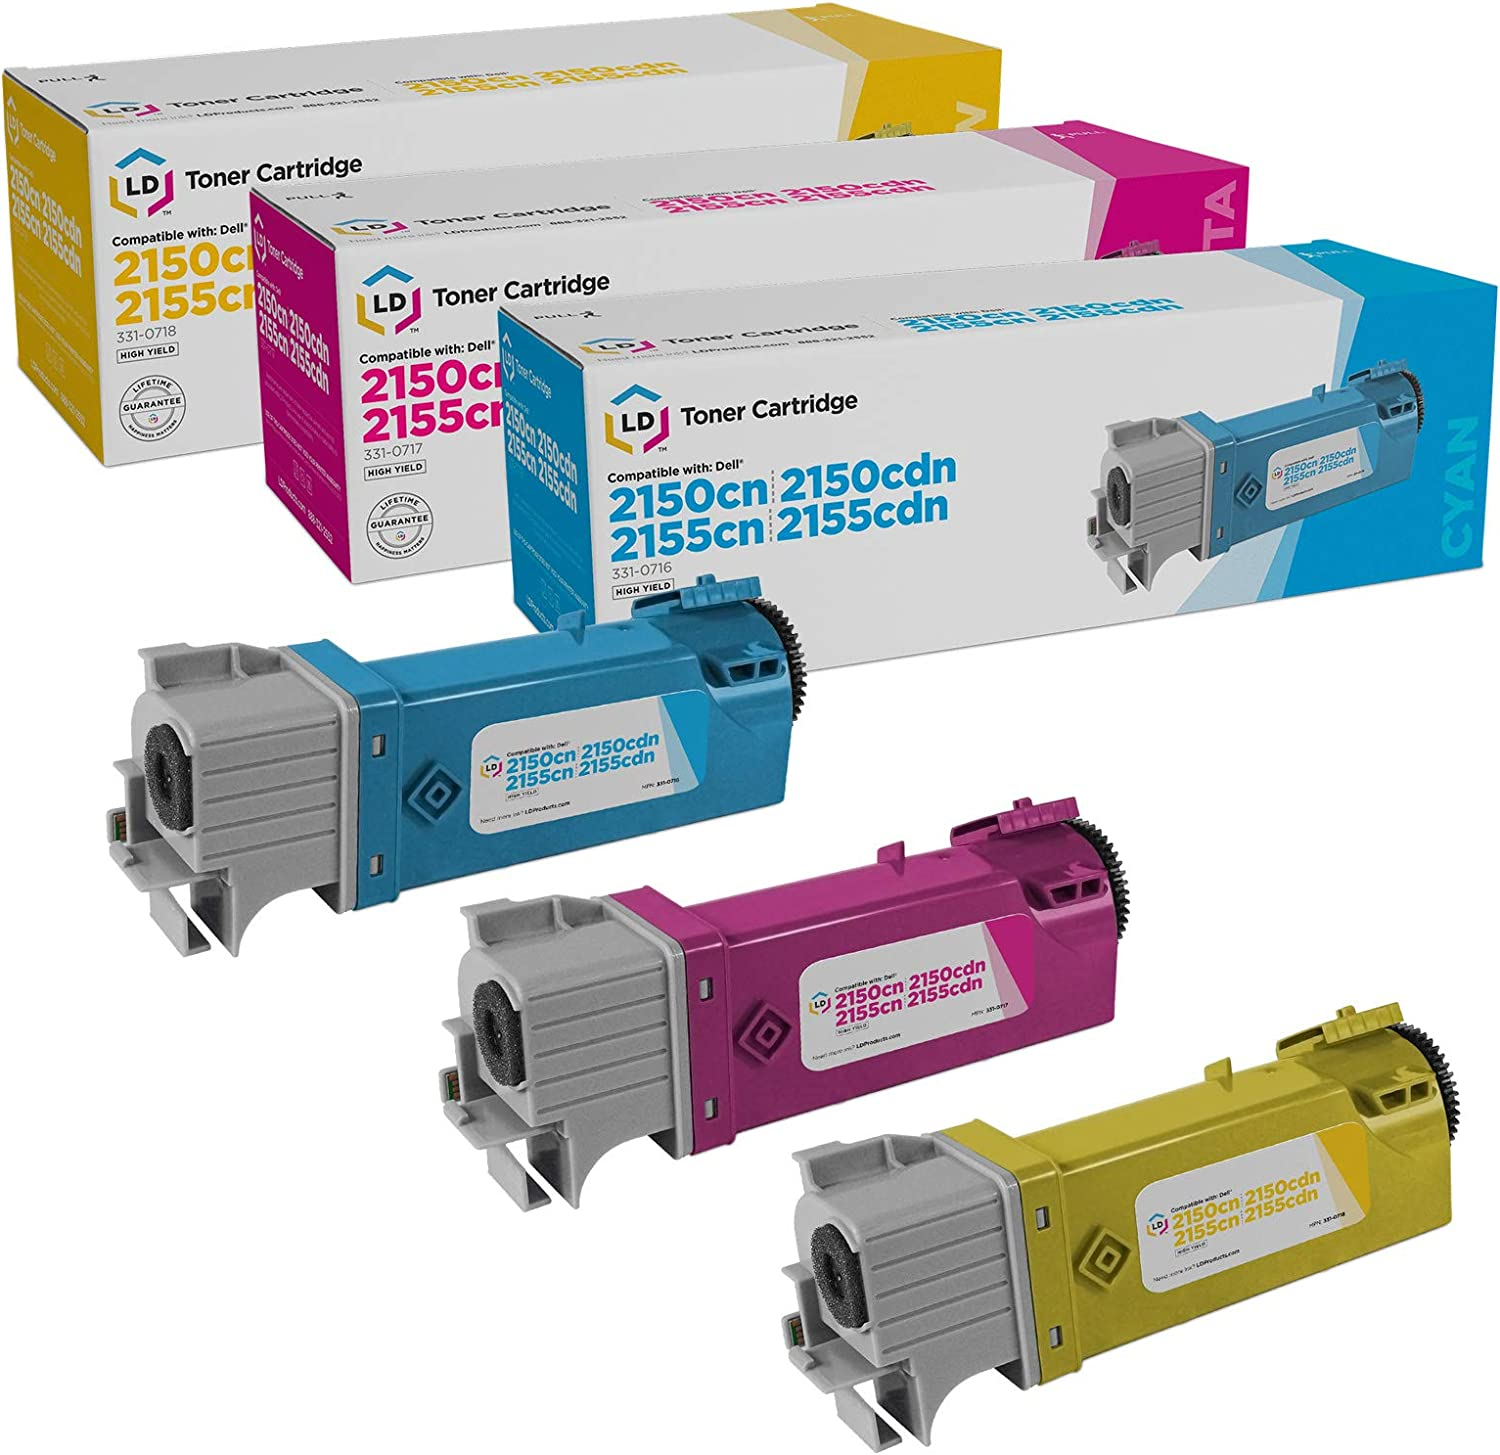 LD Compatible Dell 331-0716, 331-0717, 331-0718 Set of 3 Color Toner Cartridges: 1 Cyan, 1 Magenta and 1 Yellow for use in Dell 2150cdn, 2150cn, 2155cdn & 2155cn Printers